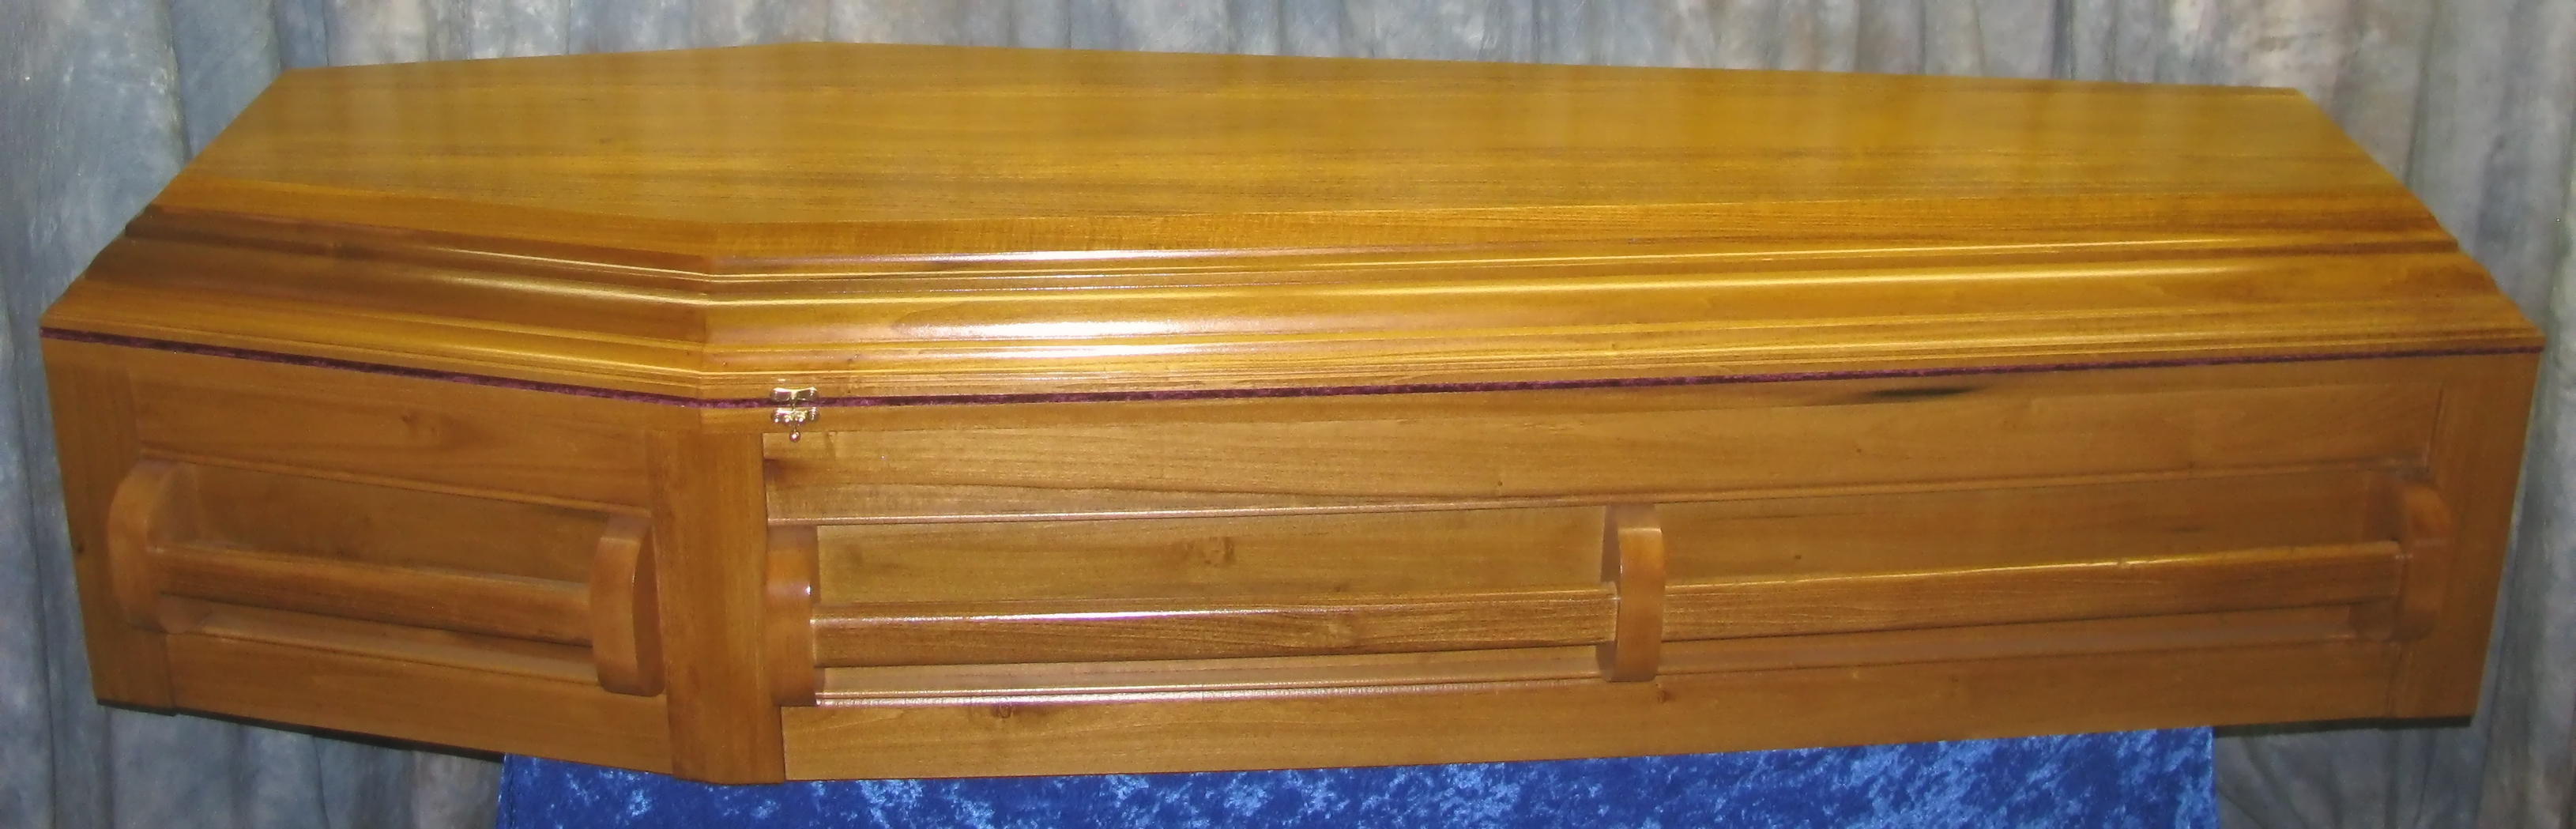 Old Wood Coffin http://aloesoul.com/3/old-wooden-casket